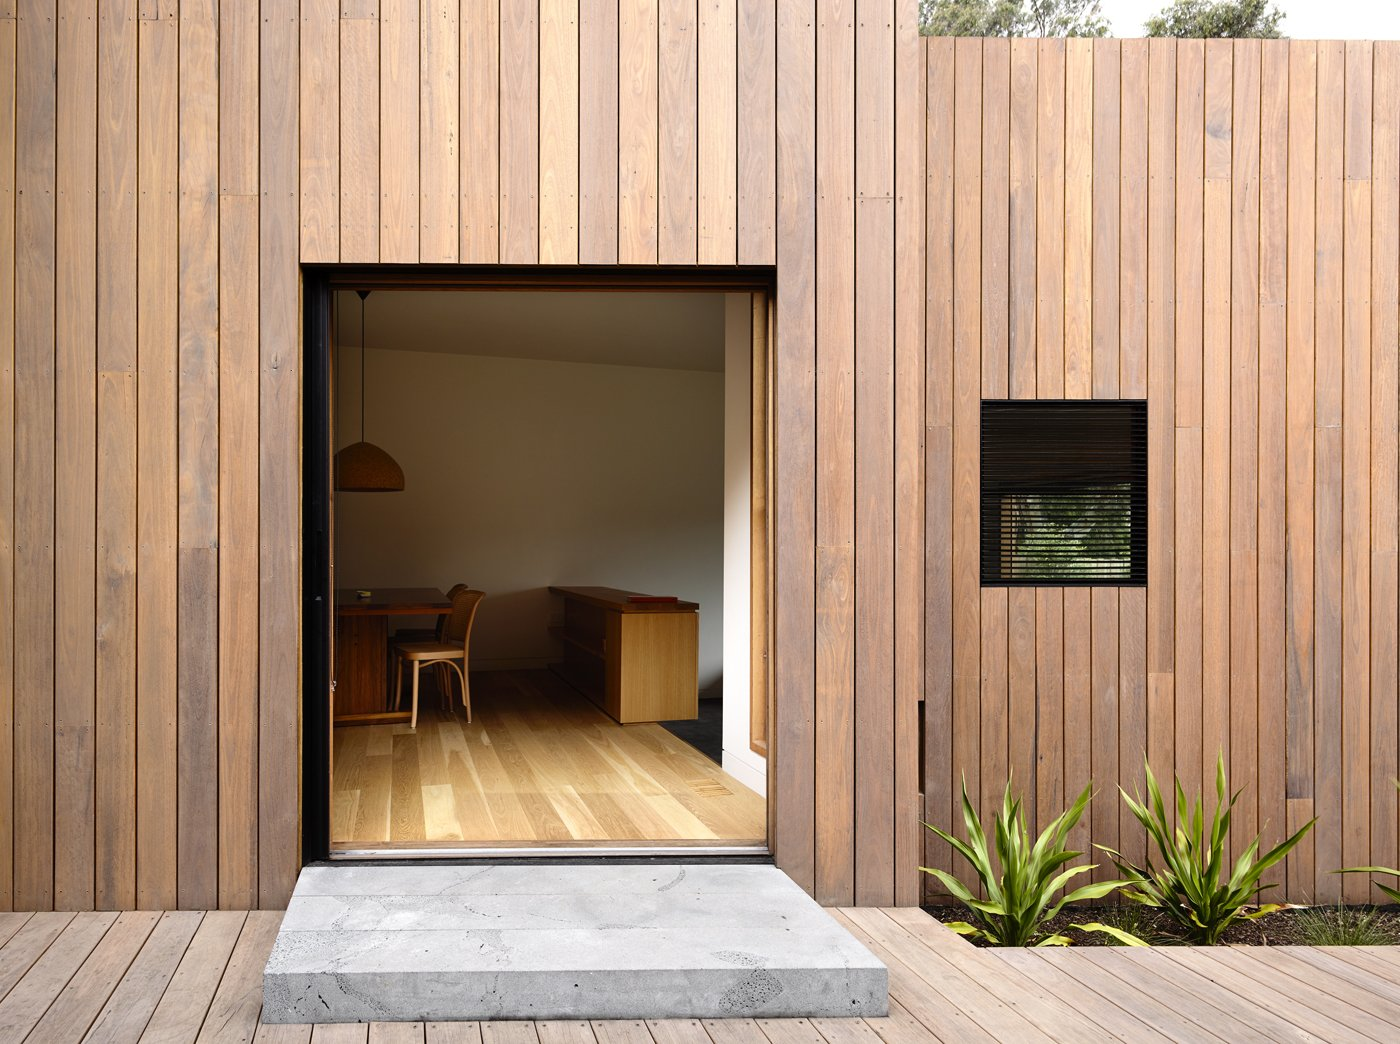 """A timber rain screen made of locally-sourced spotted gum clads the house. """"It's basically like a tortoise shell in that it's a protective layer, a shield, that allows the building to be protected from the sun and insulated from the cold,"""" Kennon says. Because of its high density, the Australian hardwood stands up well against the elements.  Lush Hill by Laura C. Mallonee"""